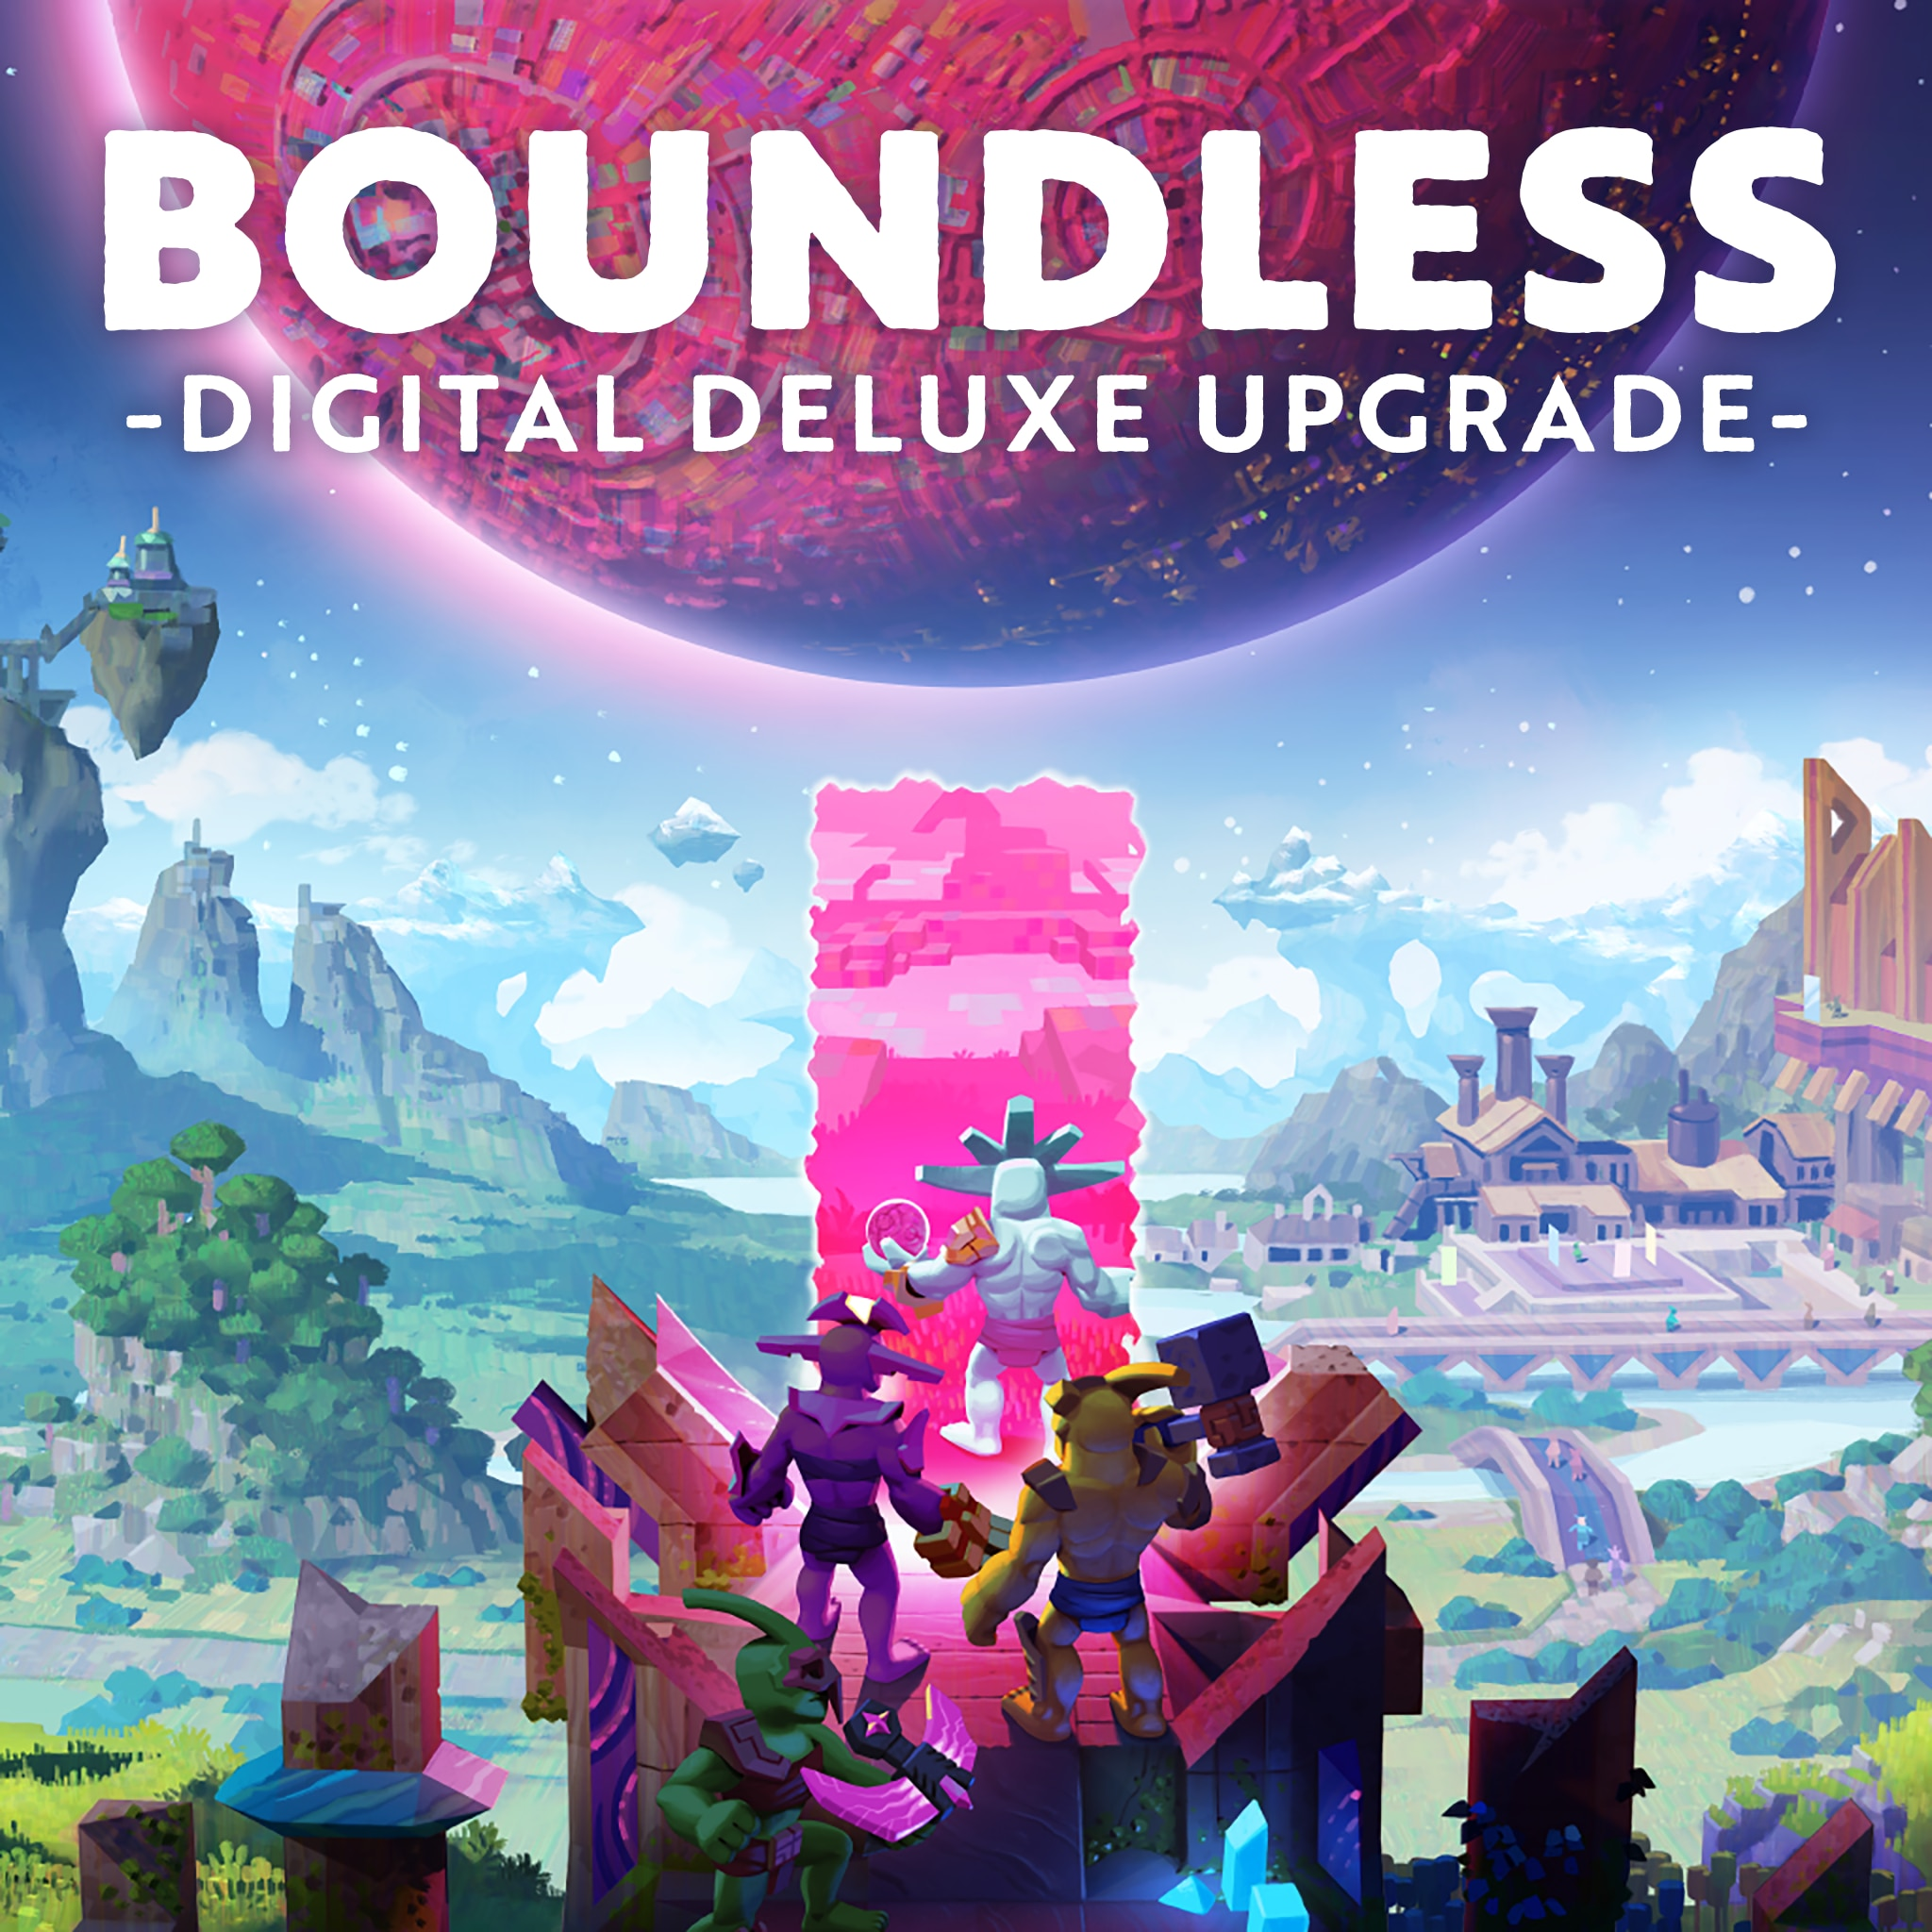 BOUNDLESS DIGITAL DELUXE EDITION UPGRADE